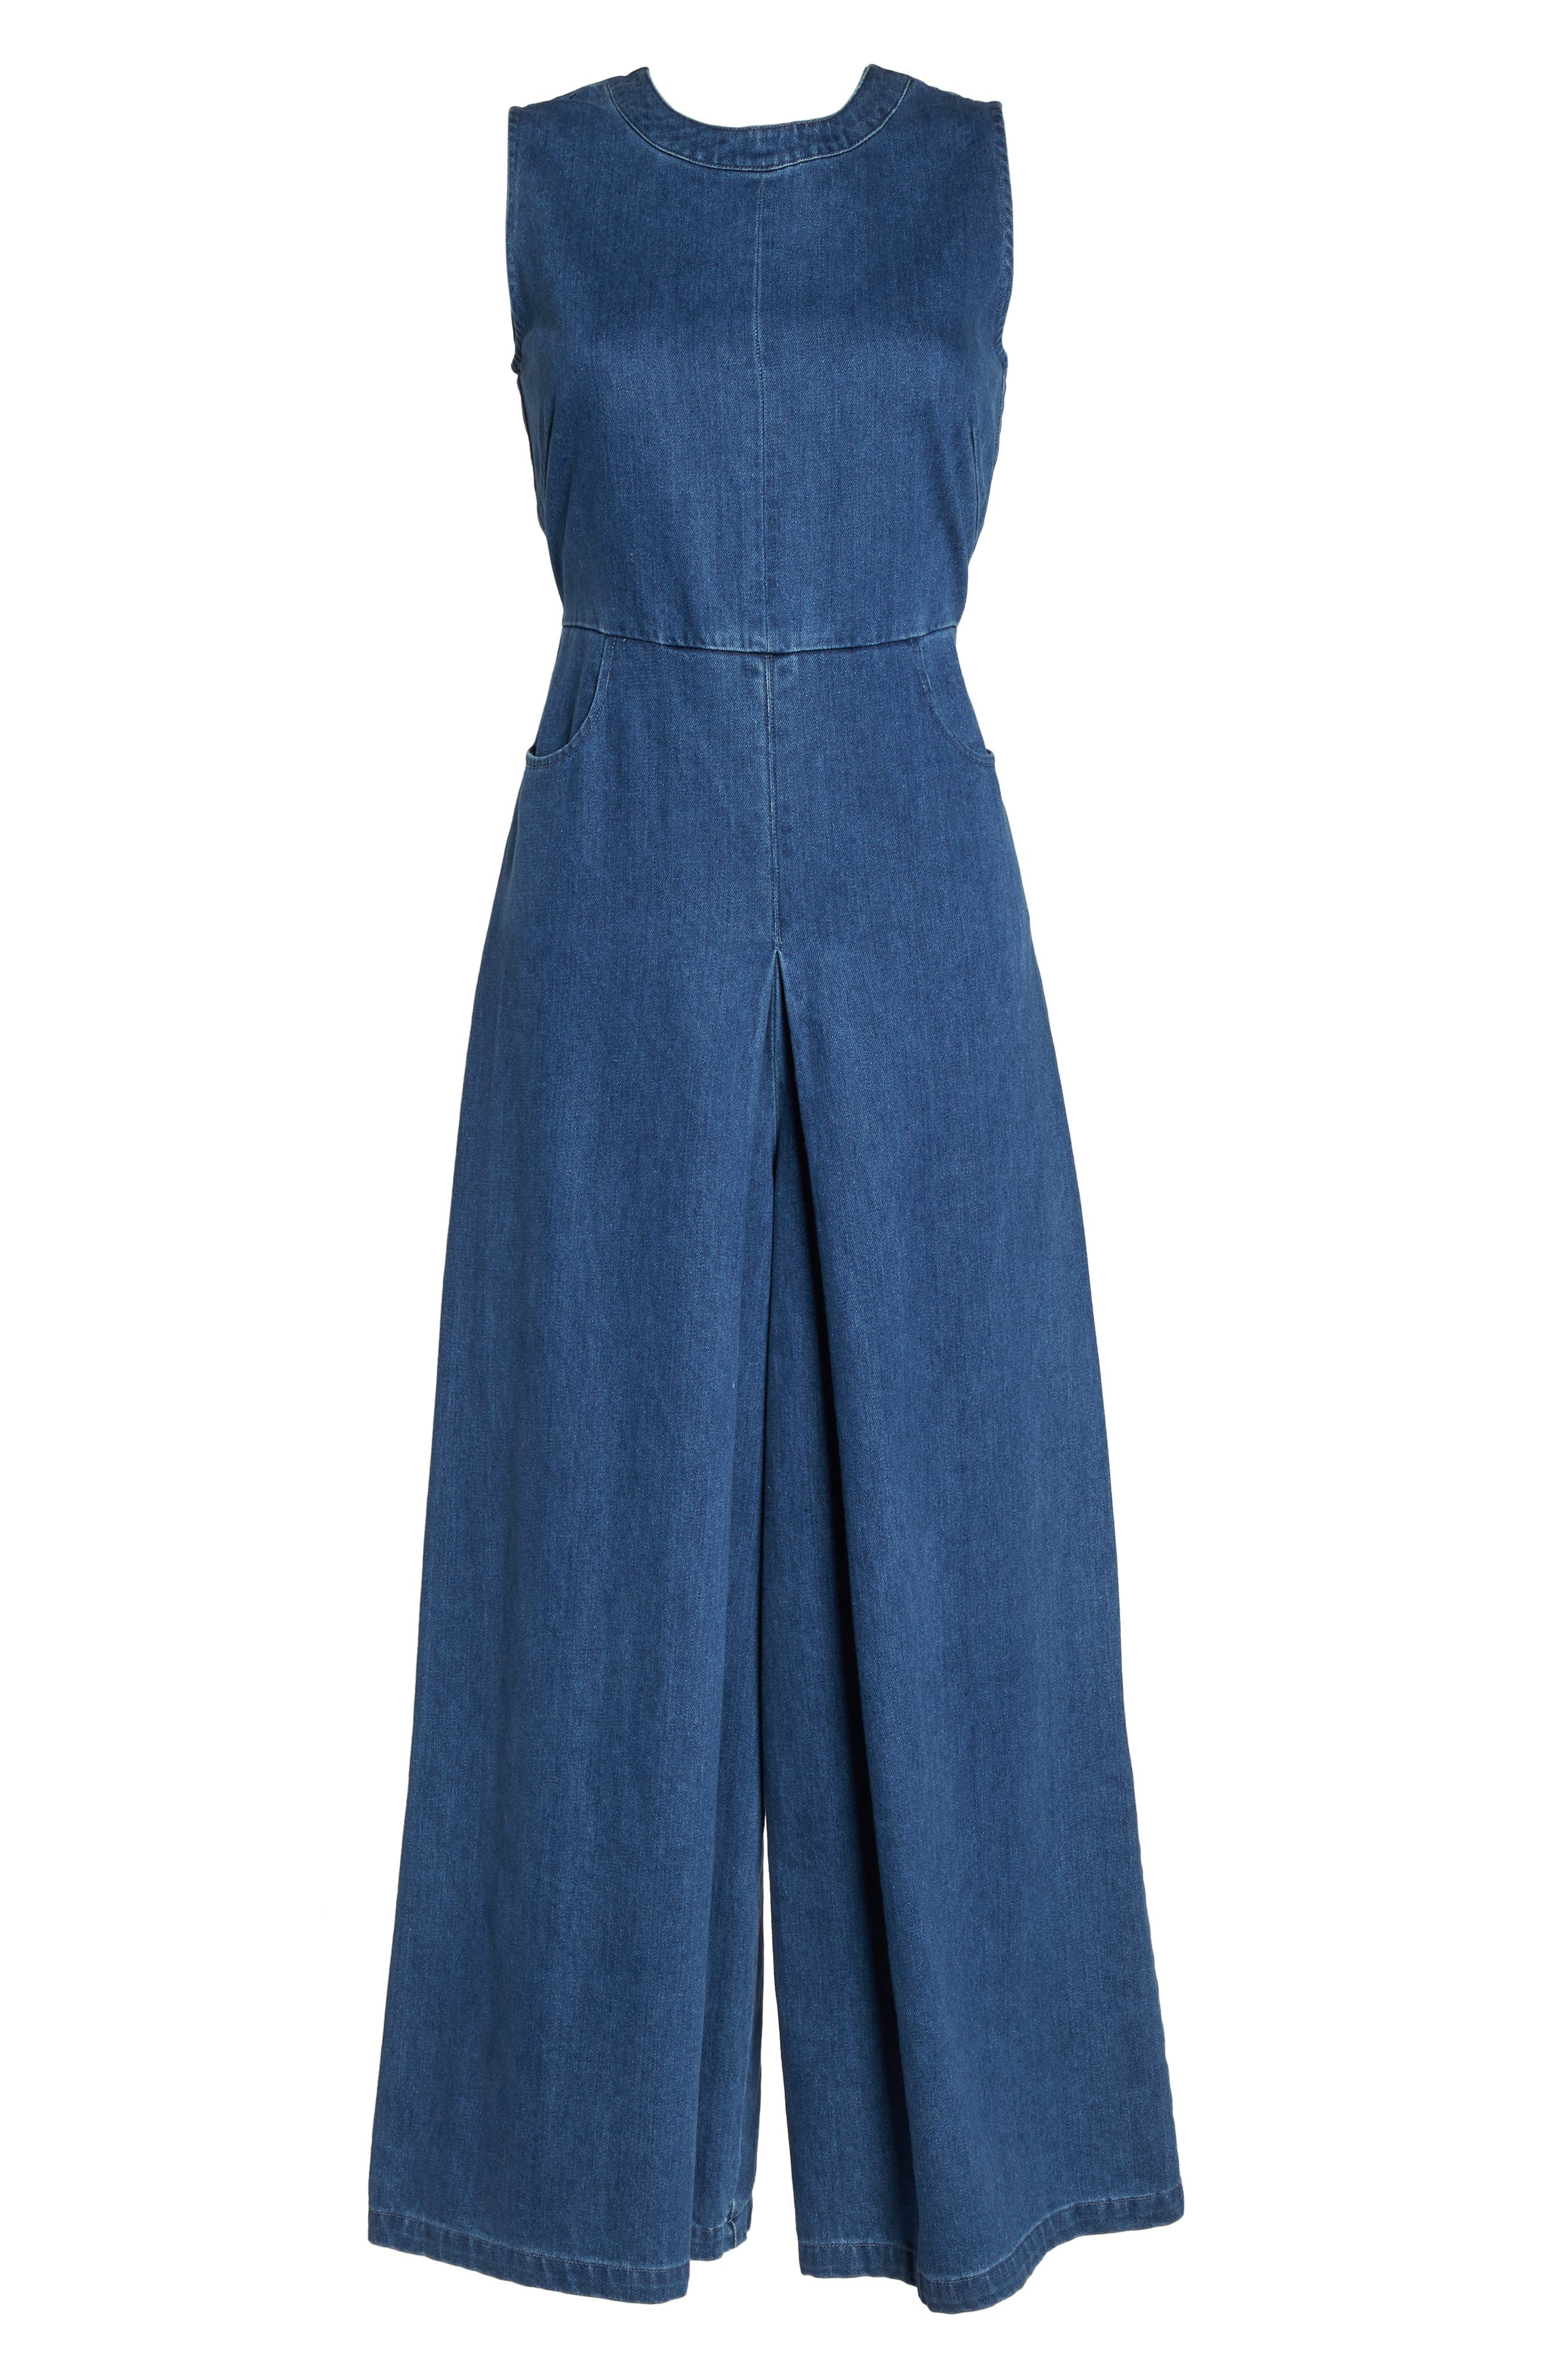 Hampton Denim Sleeveless Jumpsuit,                             Alternate thumbnail 6, color,                             400